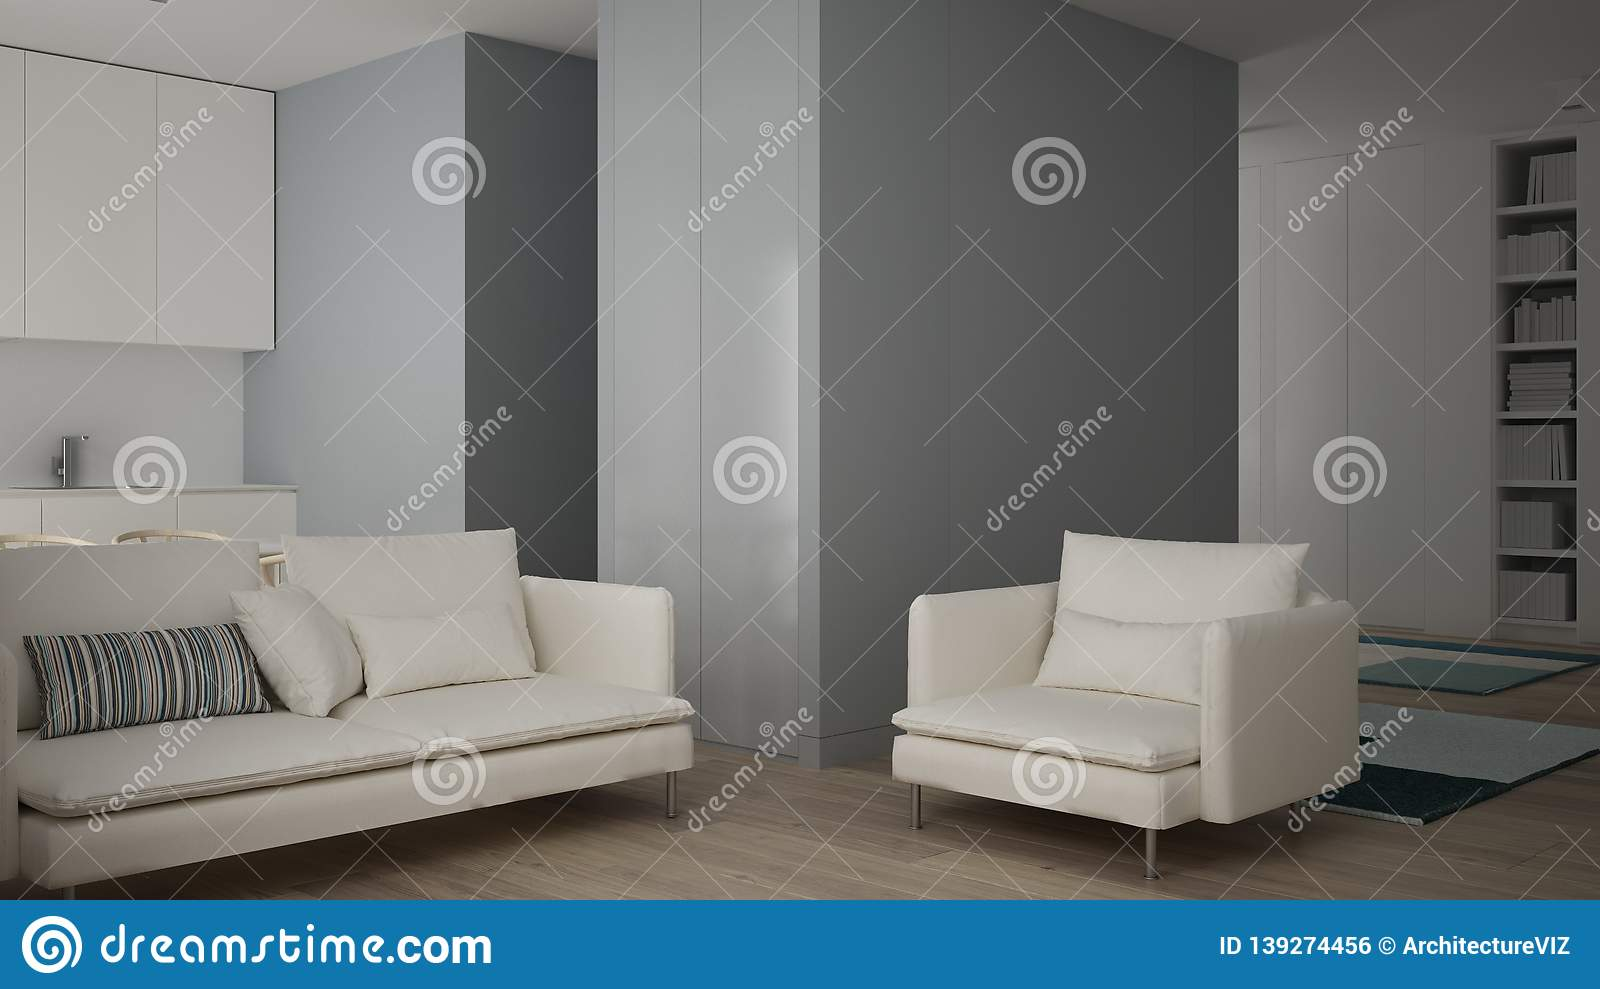 Small Apartment With Parquet Floor Modern Carpet And White Sofa In Contemporary Living Room One Room Apartment In Minimalist Stock Photo Image Of Workplace Space 139274456